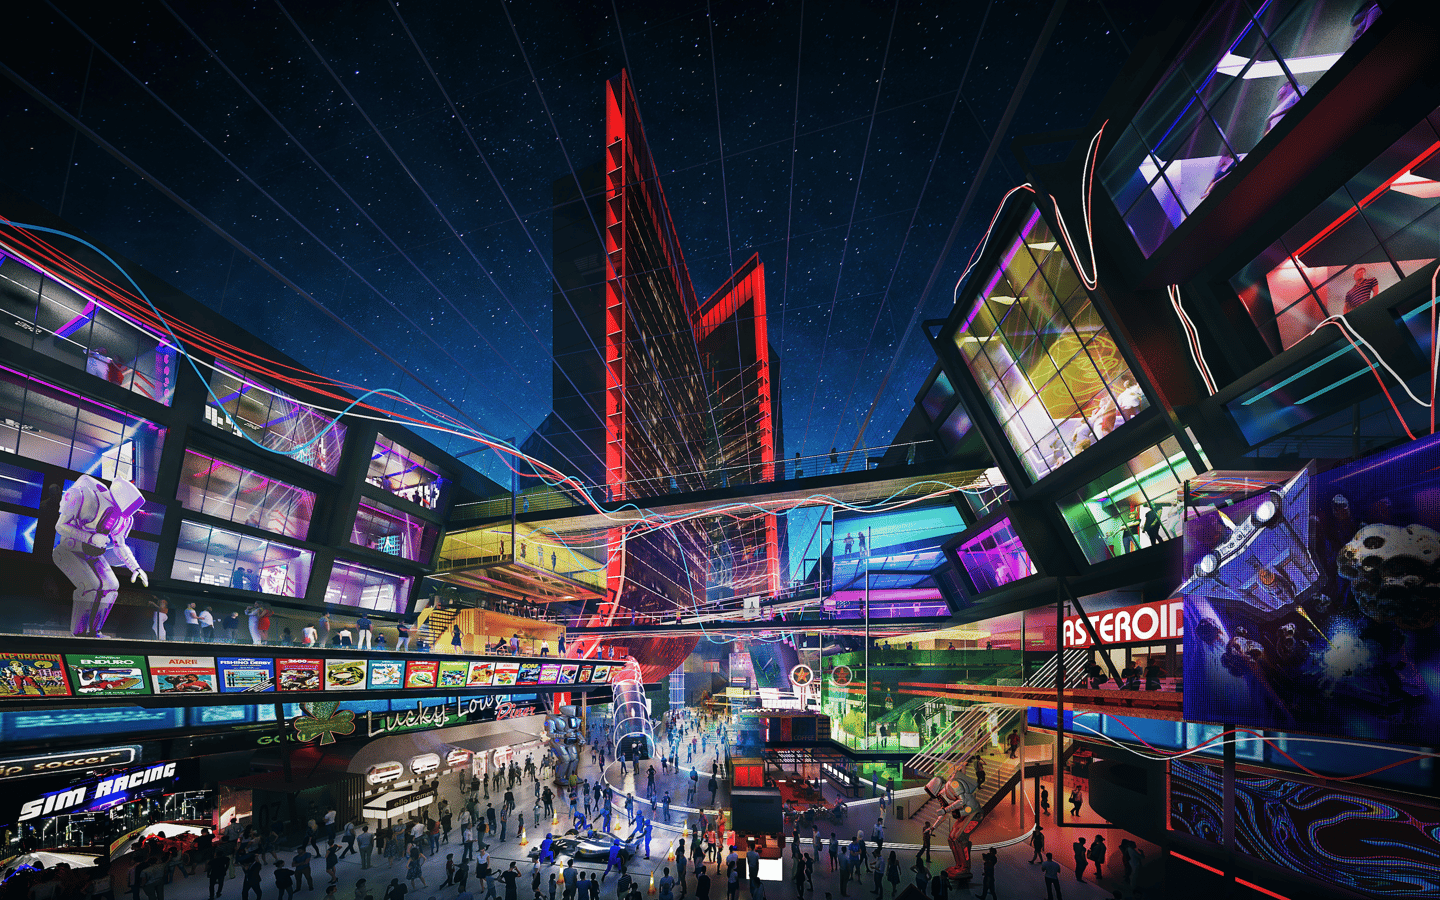 The Las Vegas Atari Hotel will offer video game-related entertainment, including VR, AR, and esports